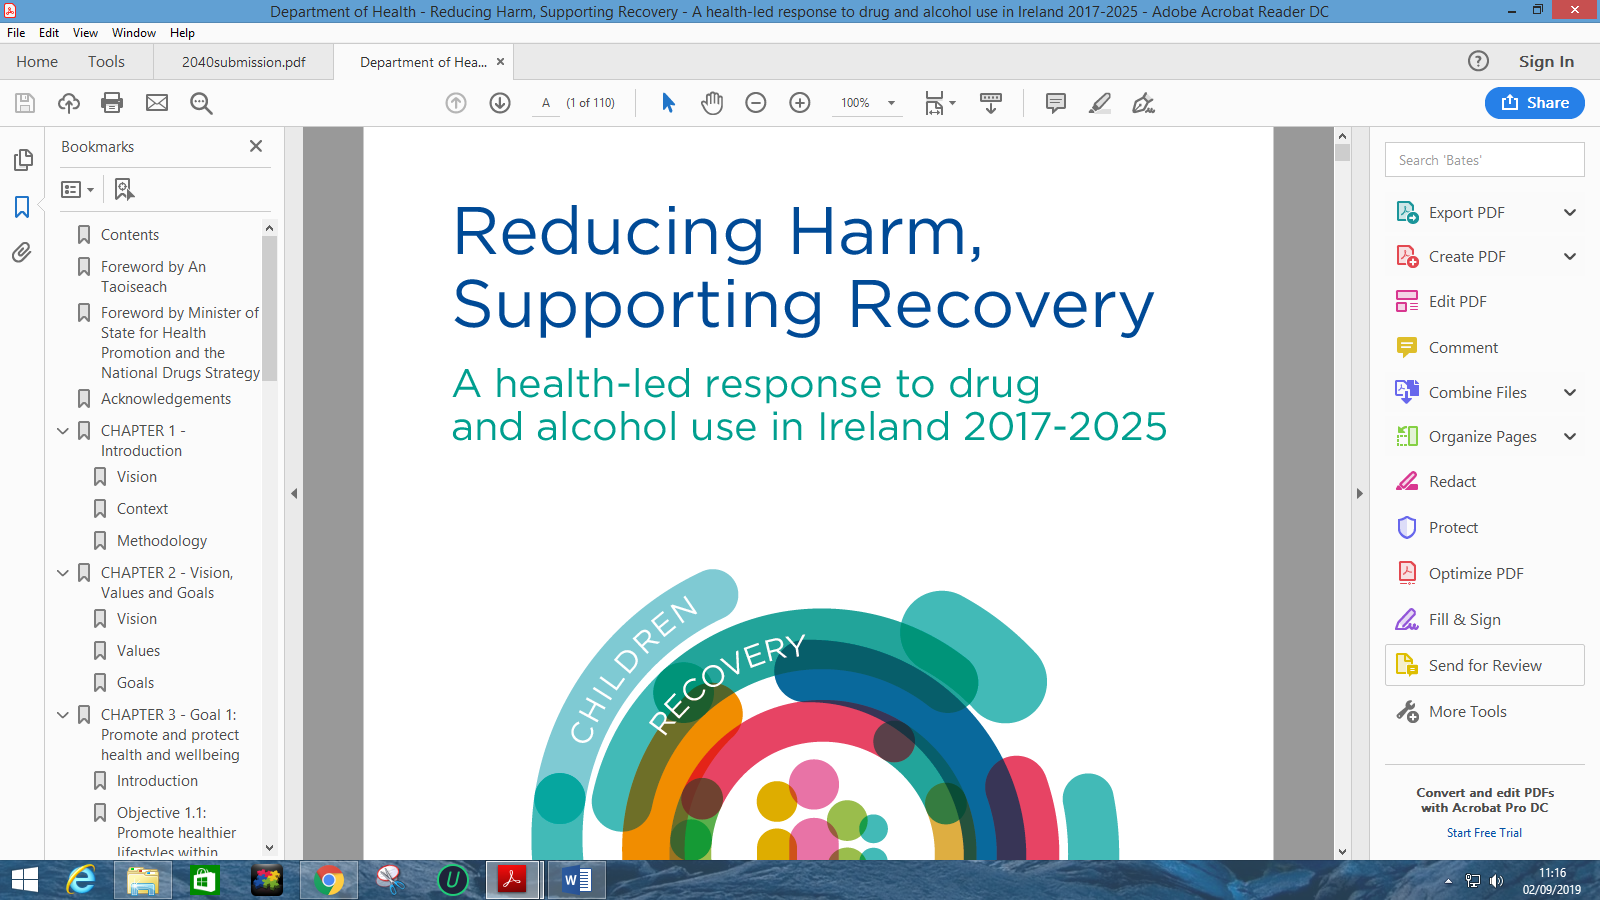 Reducing Harm Supporting Recovery 2017-2025